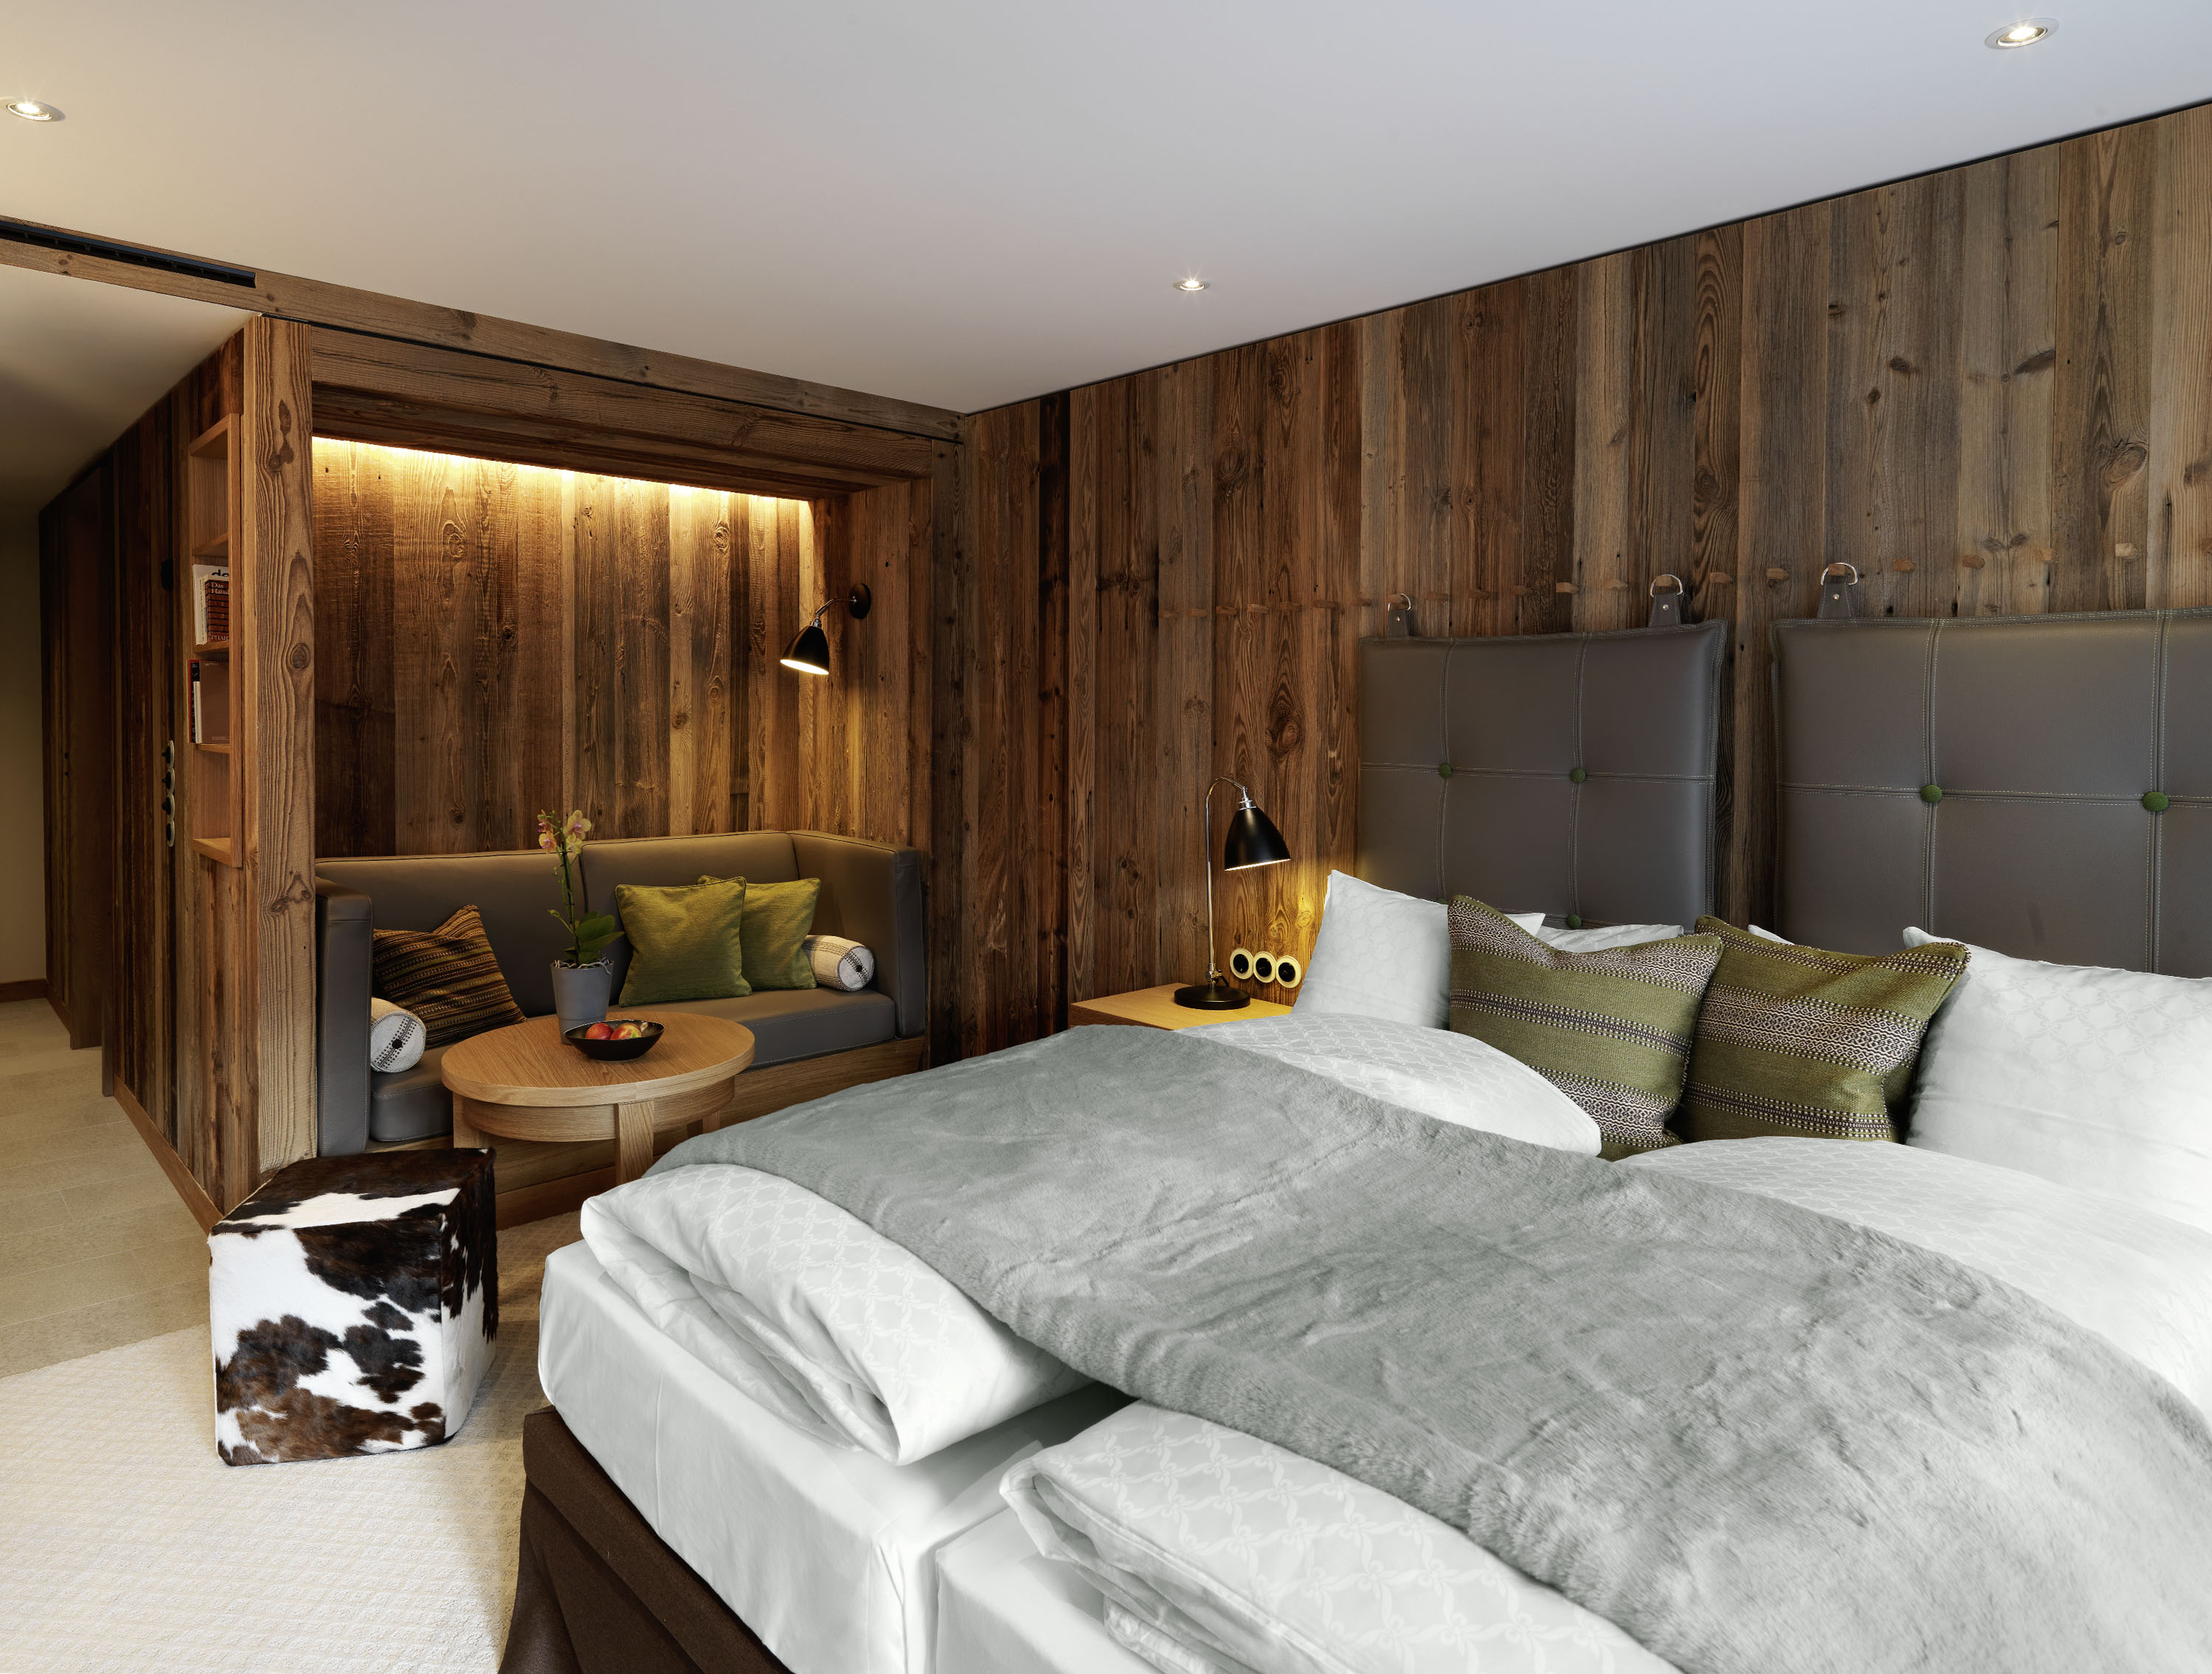 l wen hotel montafon golfferien im vorarlberger montafon tal. Black Bedroom Furniture Sets. Home Design Ideas